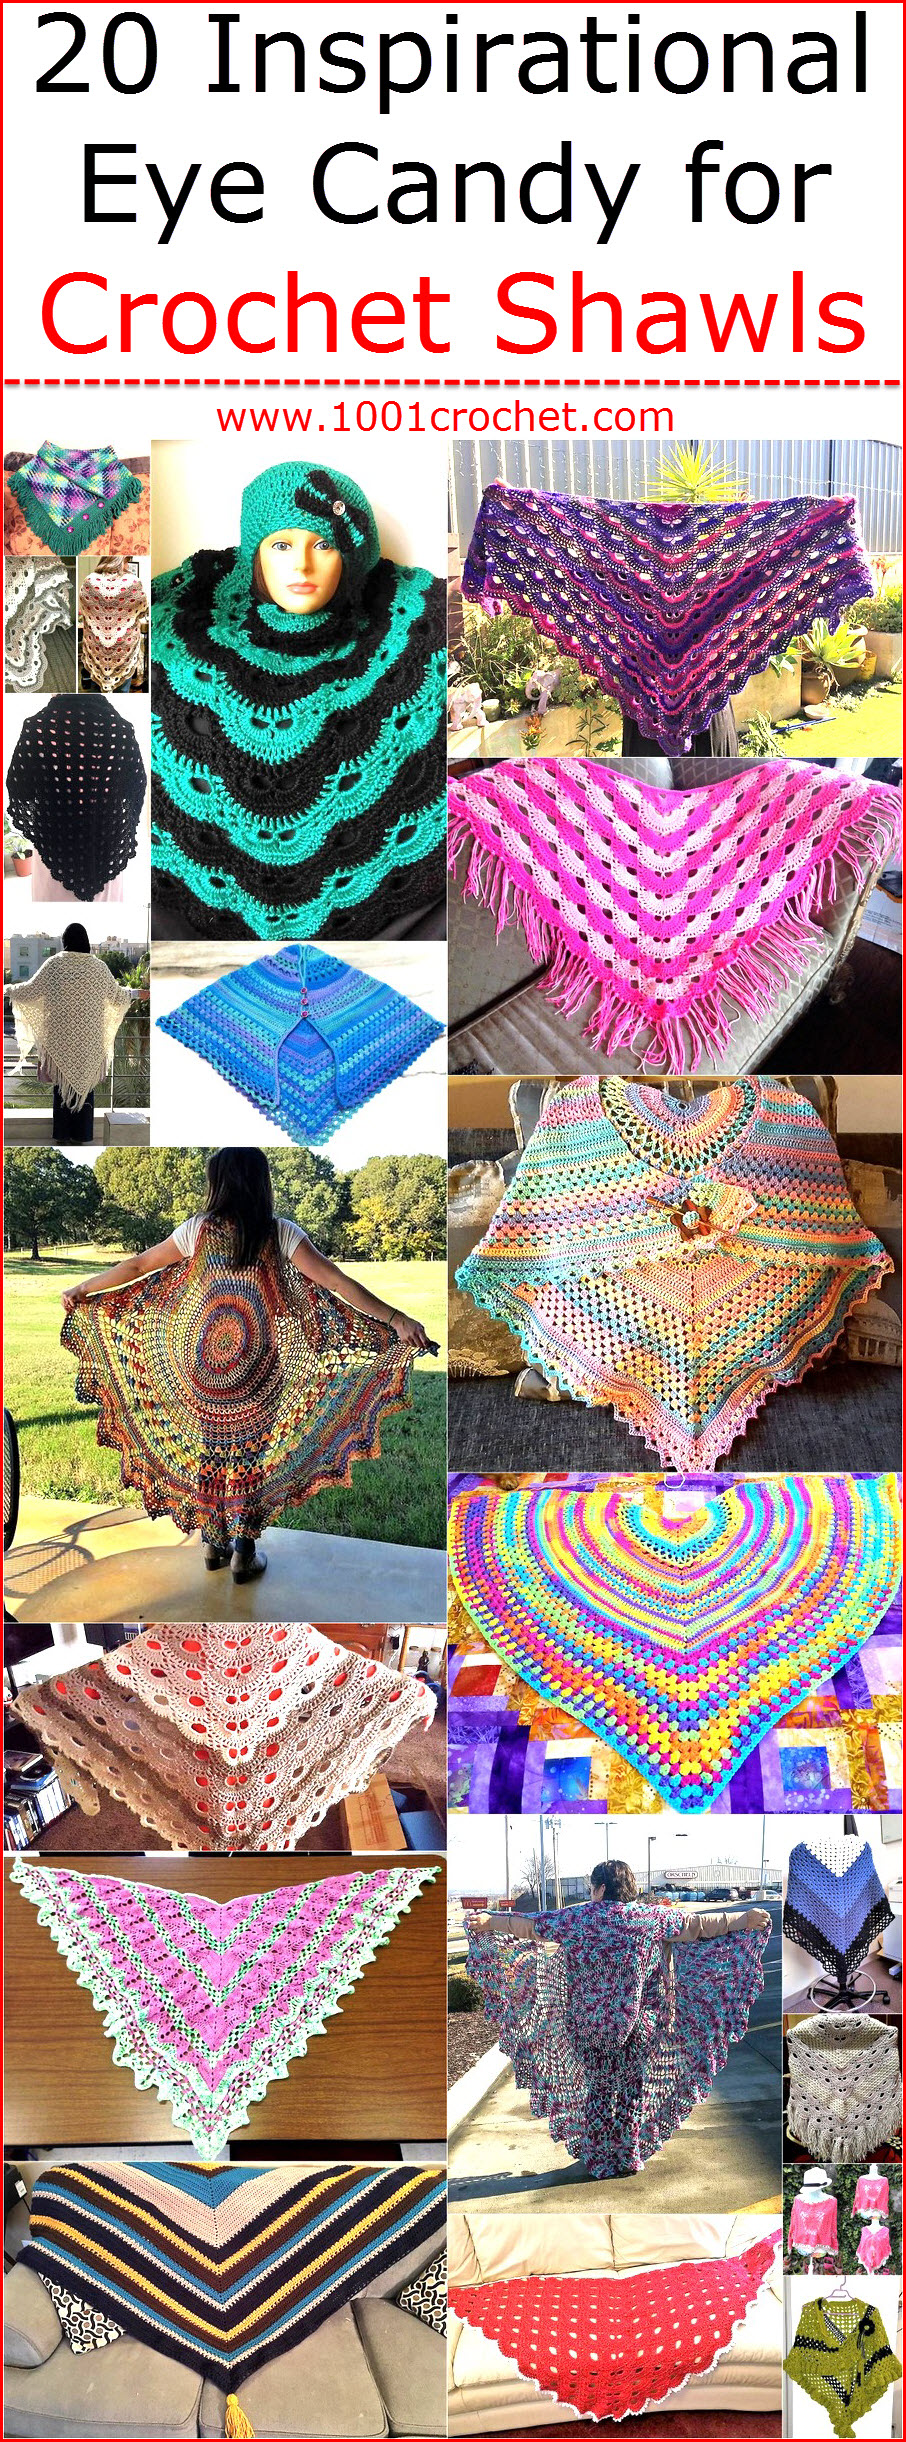 20-inspirational-eye-candy-for-crochet-shawls